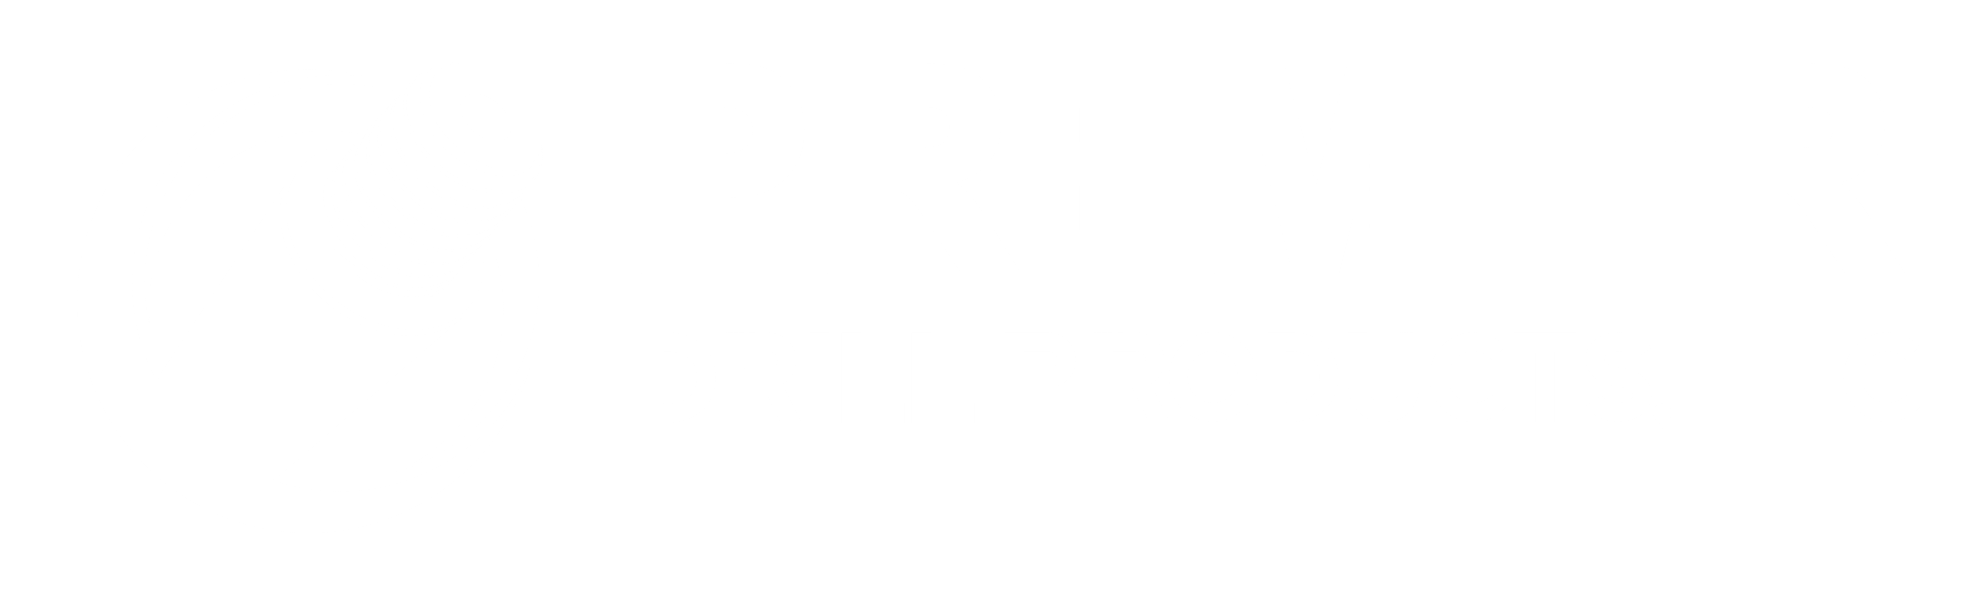 Premier Drill Products